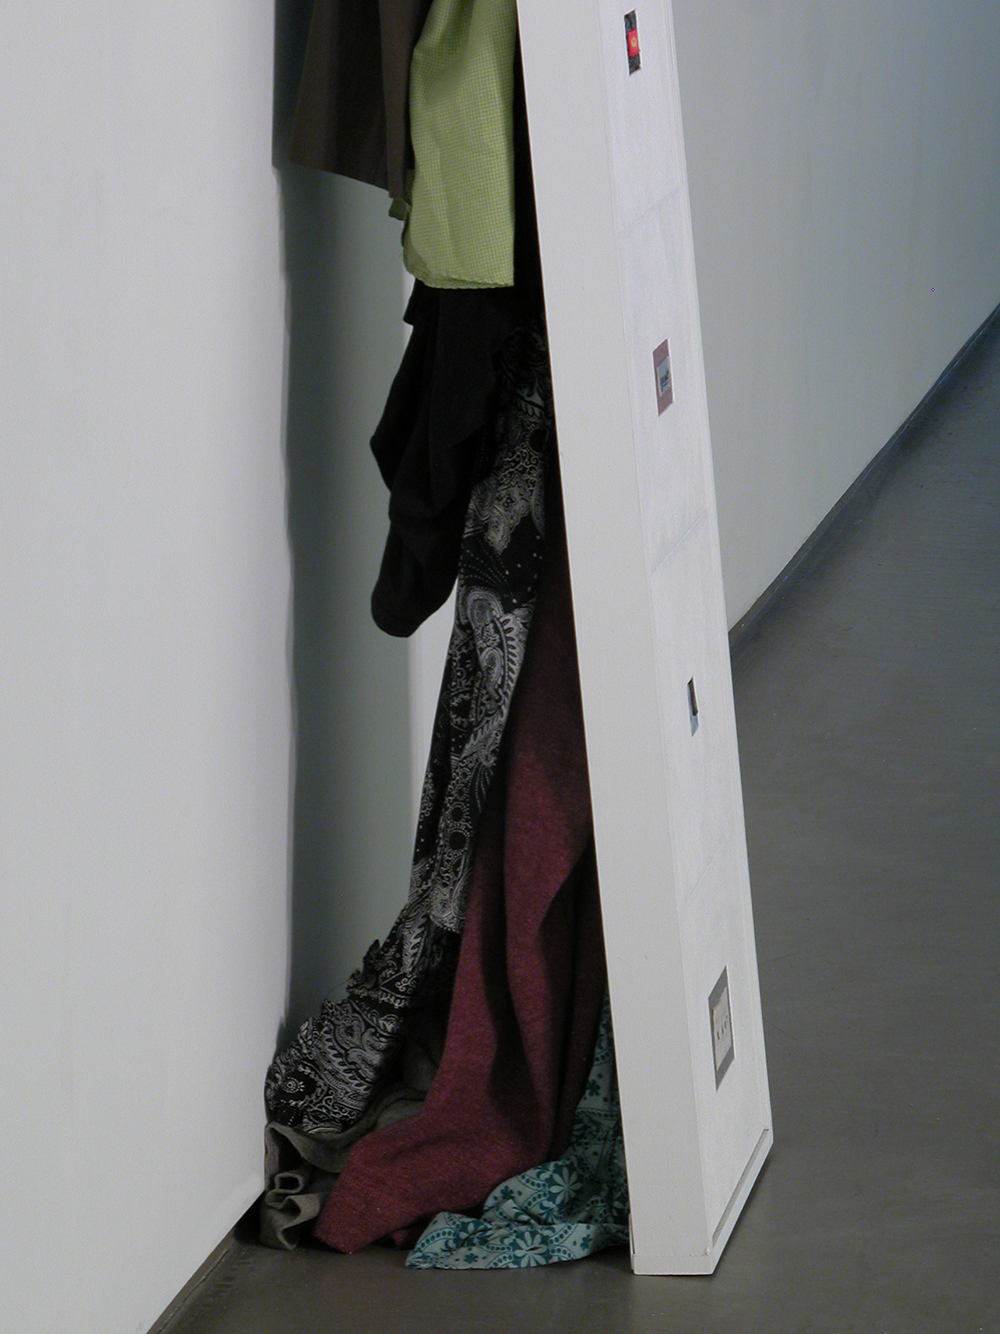 Clothing Sculpture: My Agenda for Chaos, 2008 (side view)